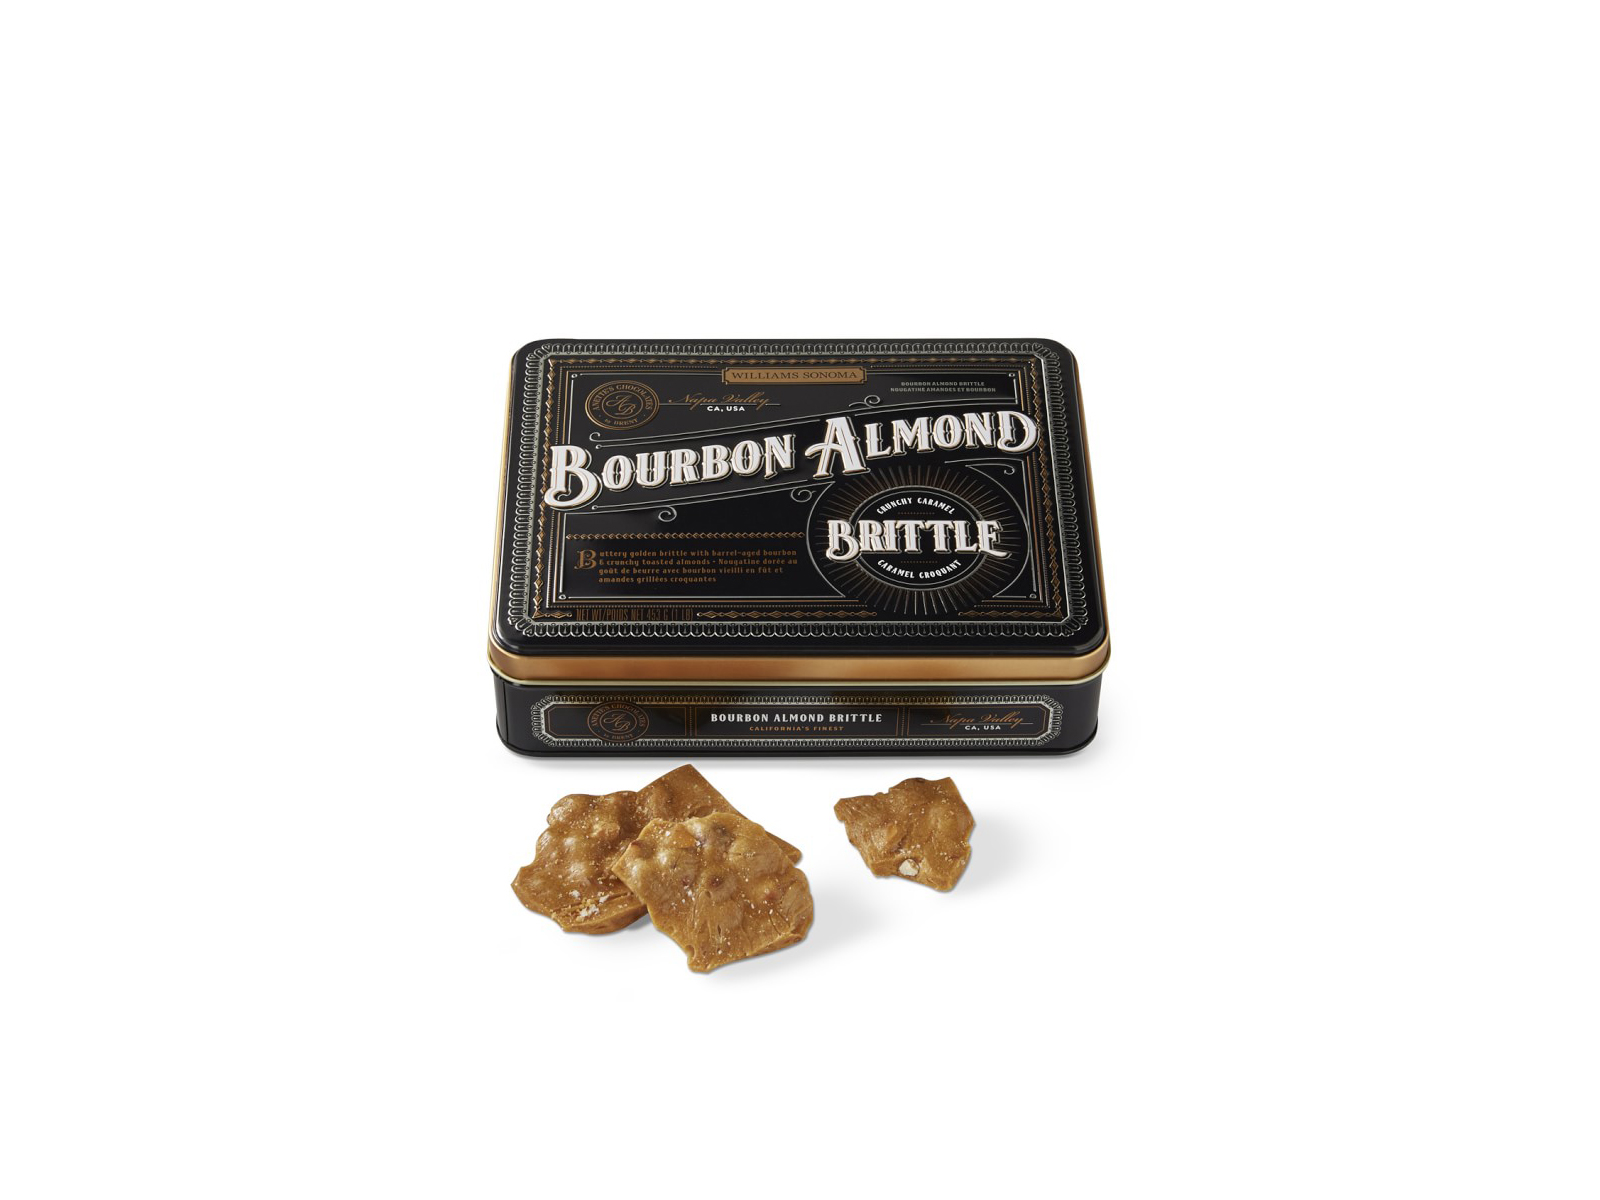 Bourbon Almond Brittle (The Best of Williams Sonoma Holiday)